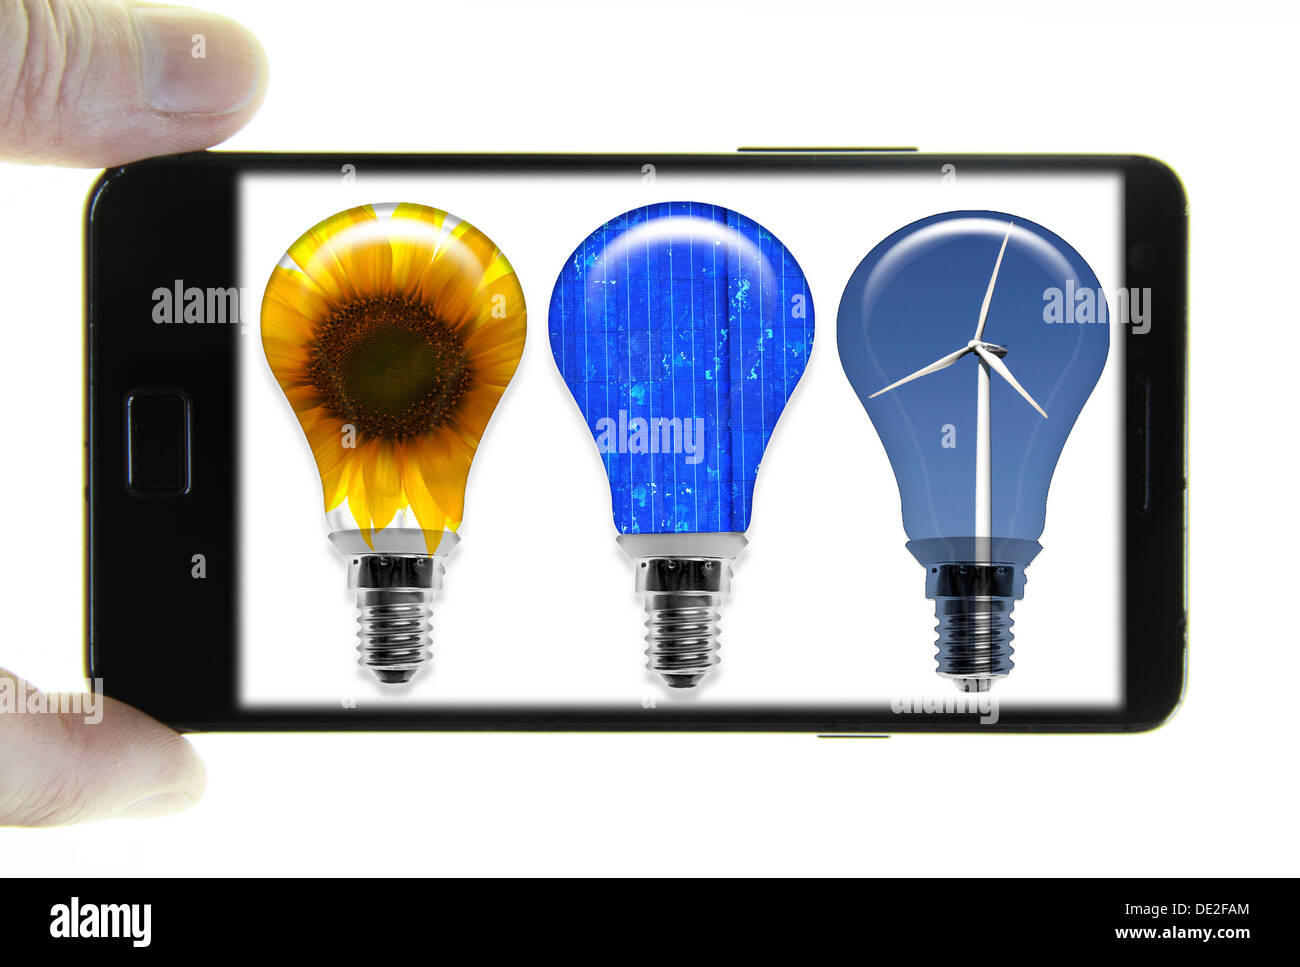 Mobile phone with a photo of light bulbs, symbolic image for Stock